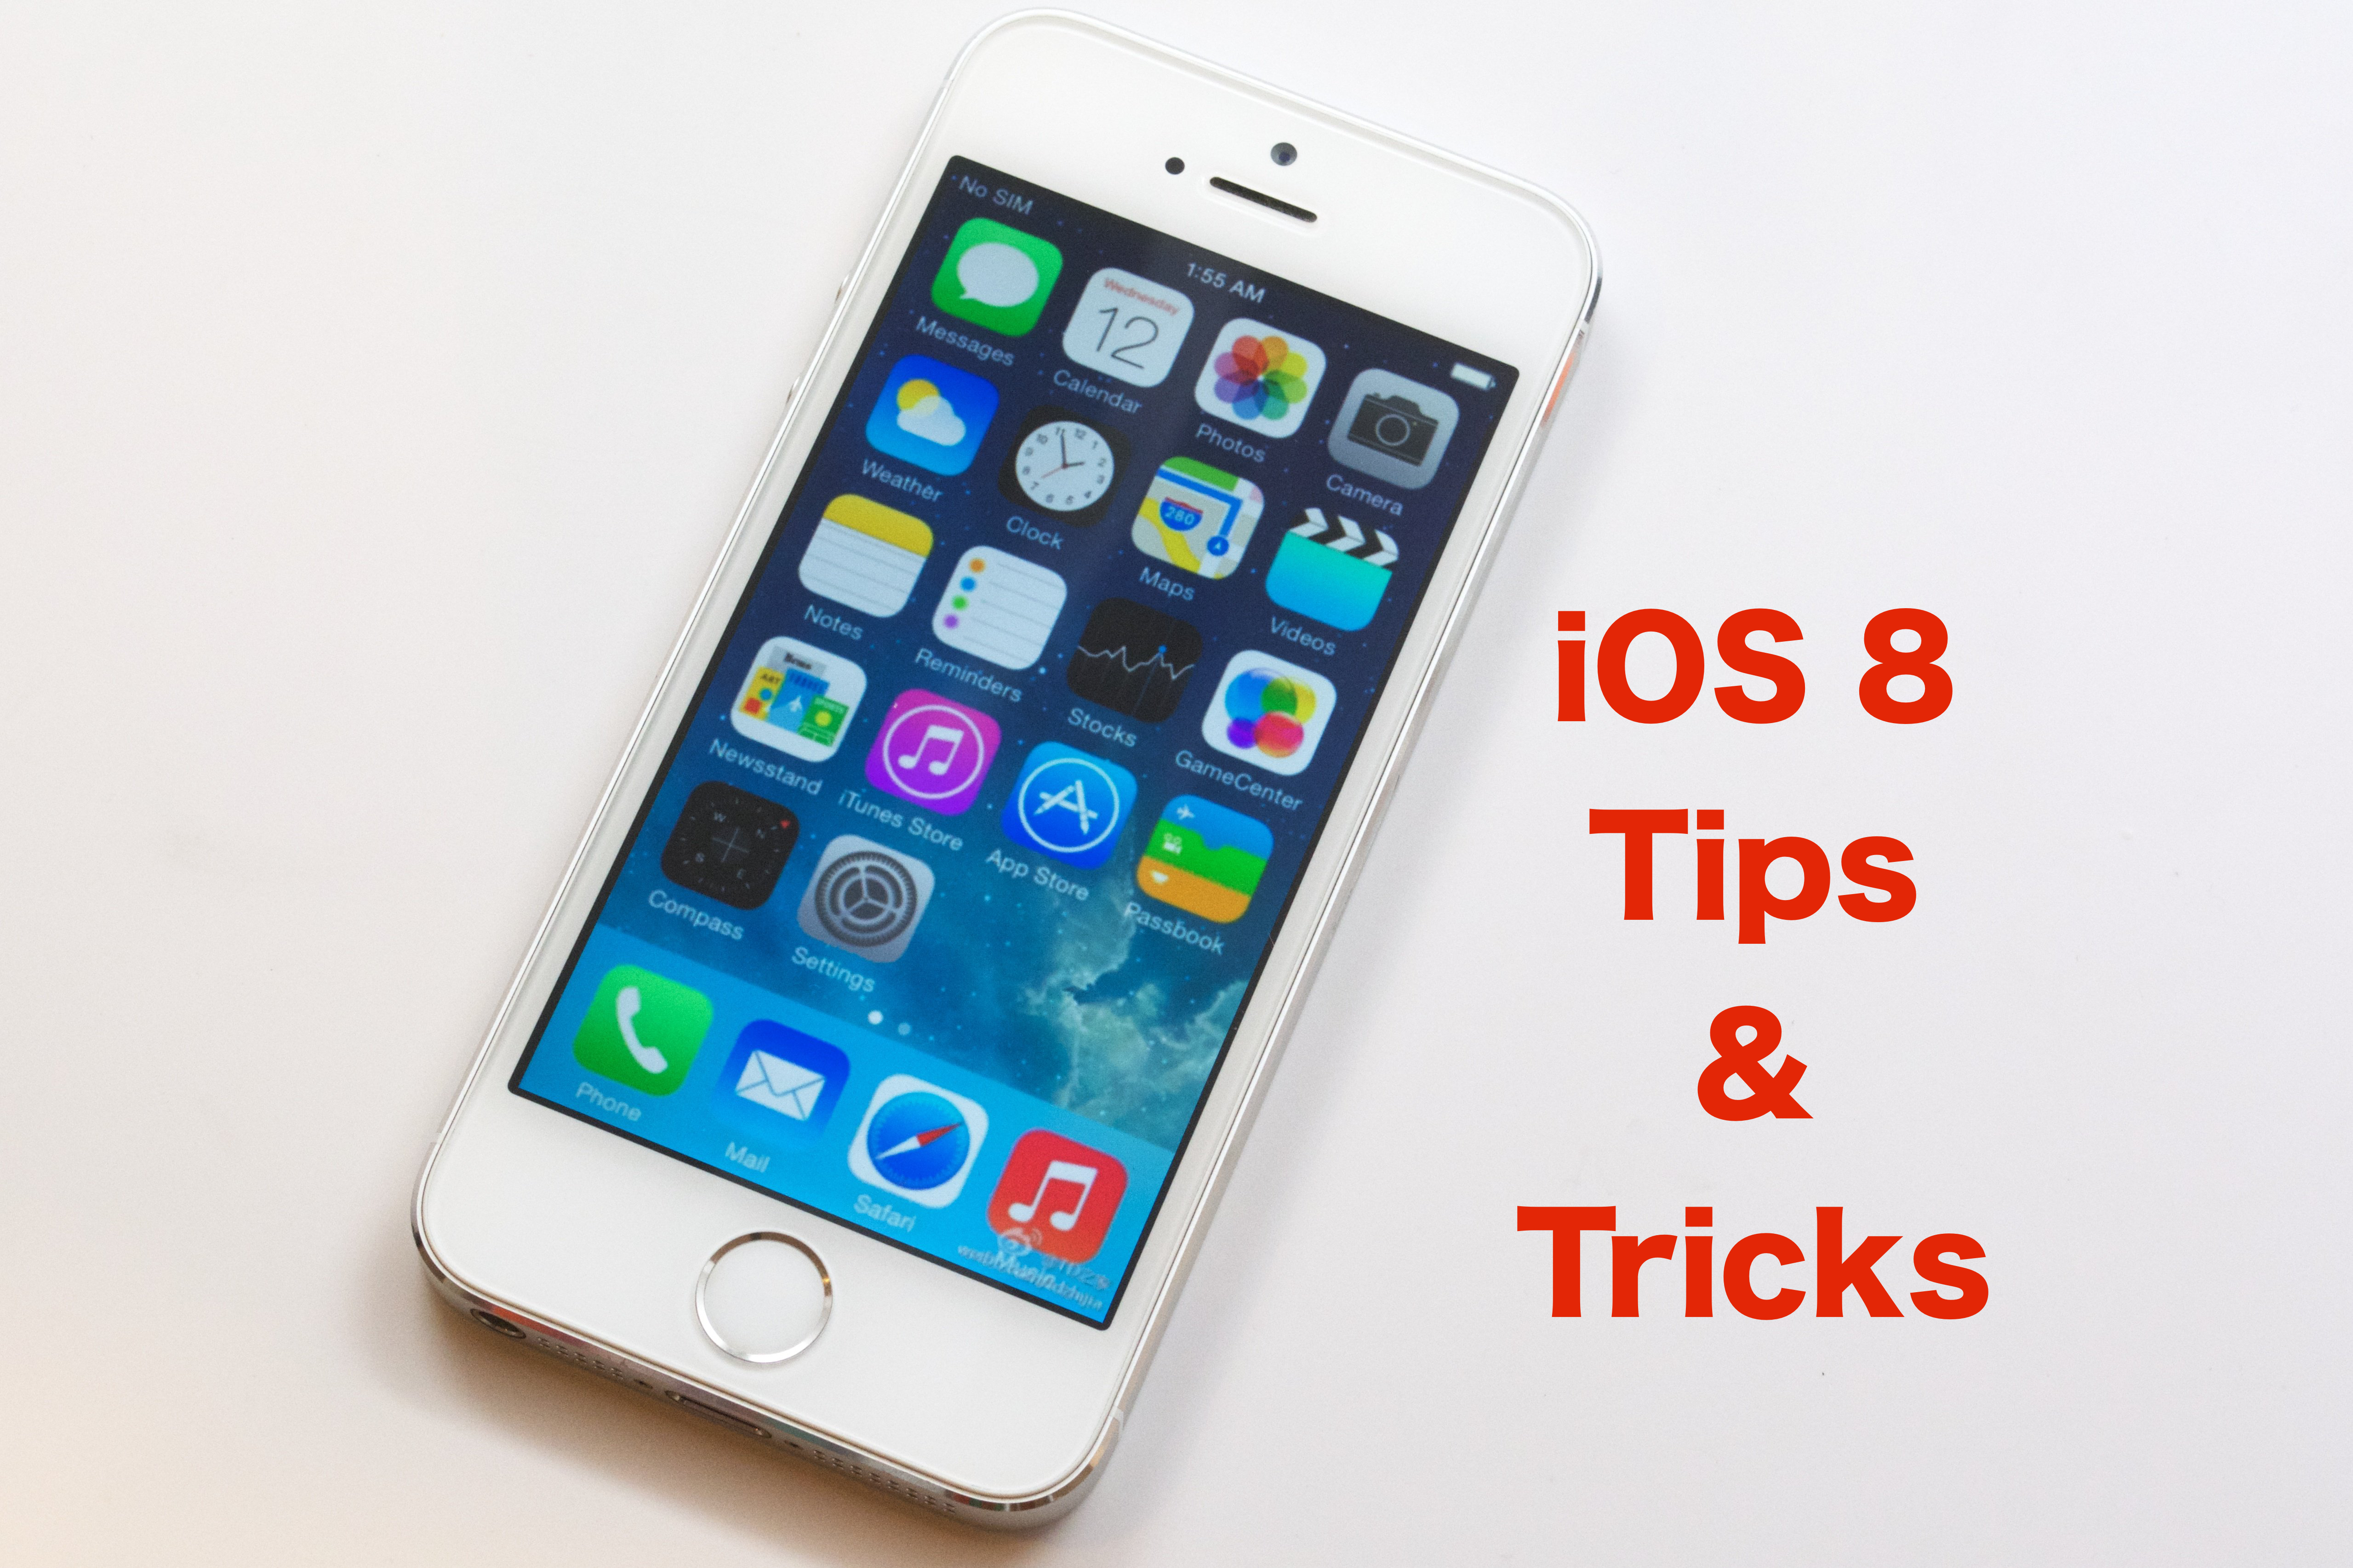 iphone 5s tricks 41 ios 8 tips amp tricks 11258